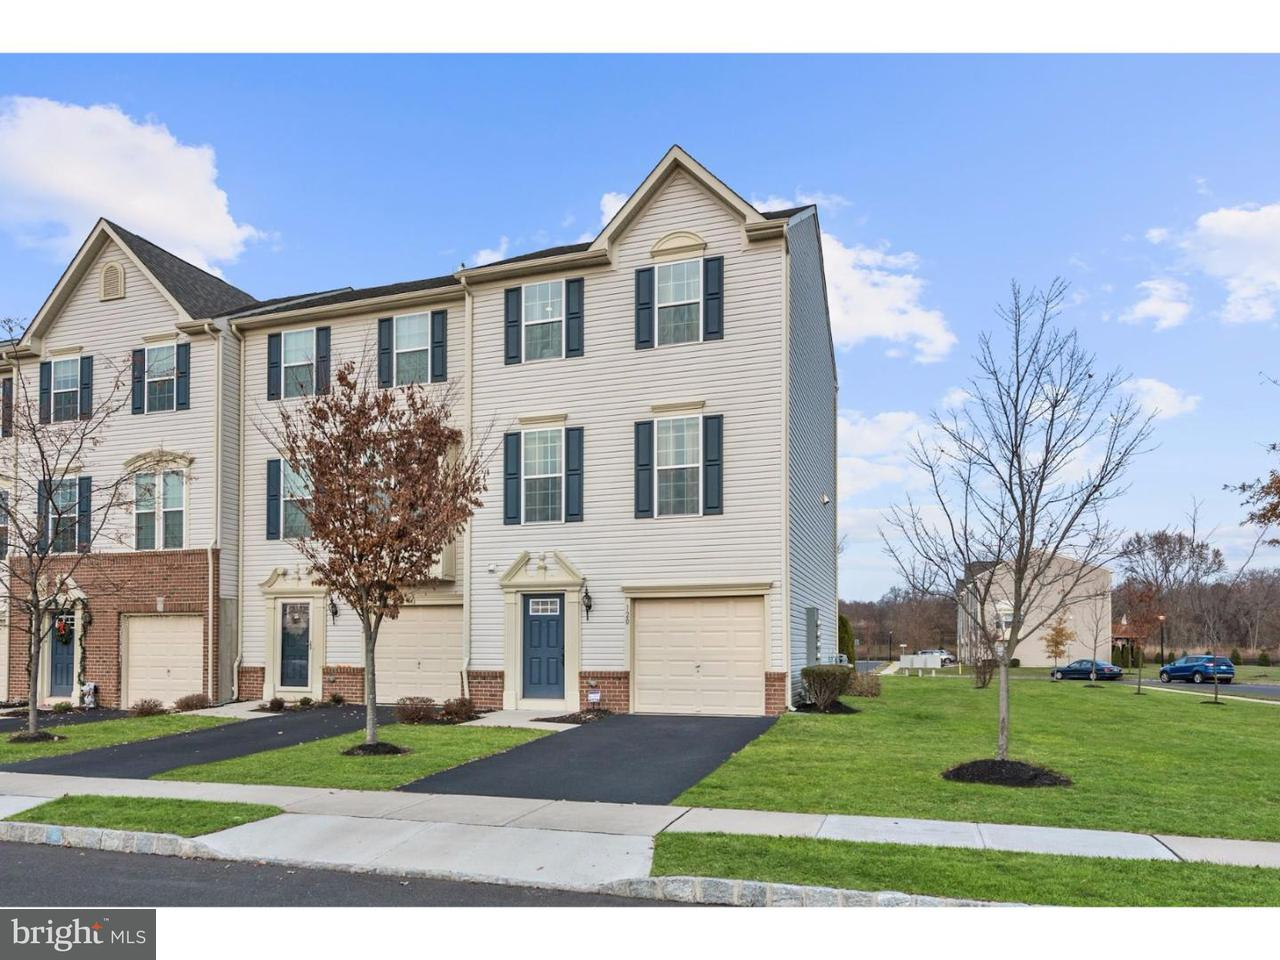 Townhouse for Rent at 120 MICHELE WAY Cinnaminson, New Jersey 08077 United States